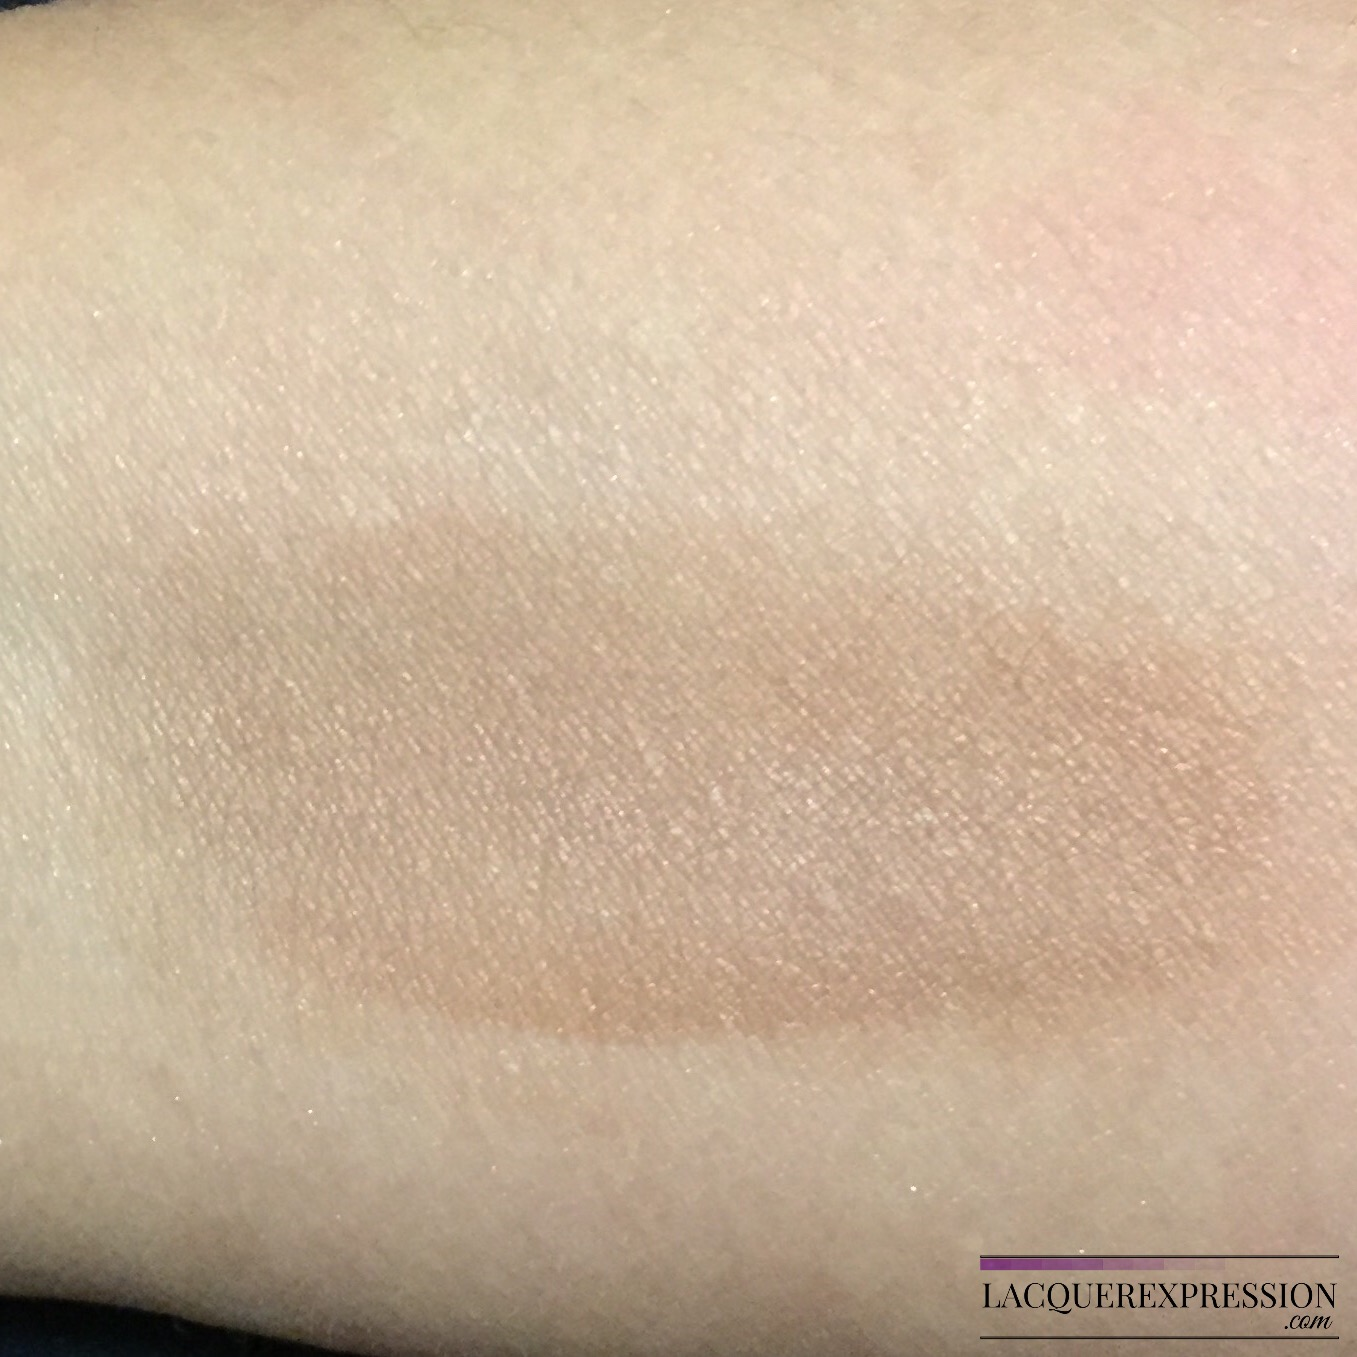 Megacushion Contour by Wet n Wild Beauty #3